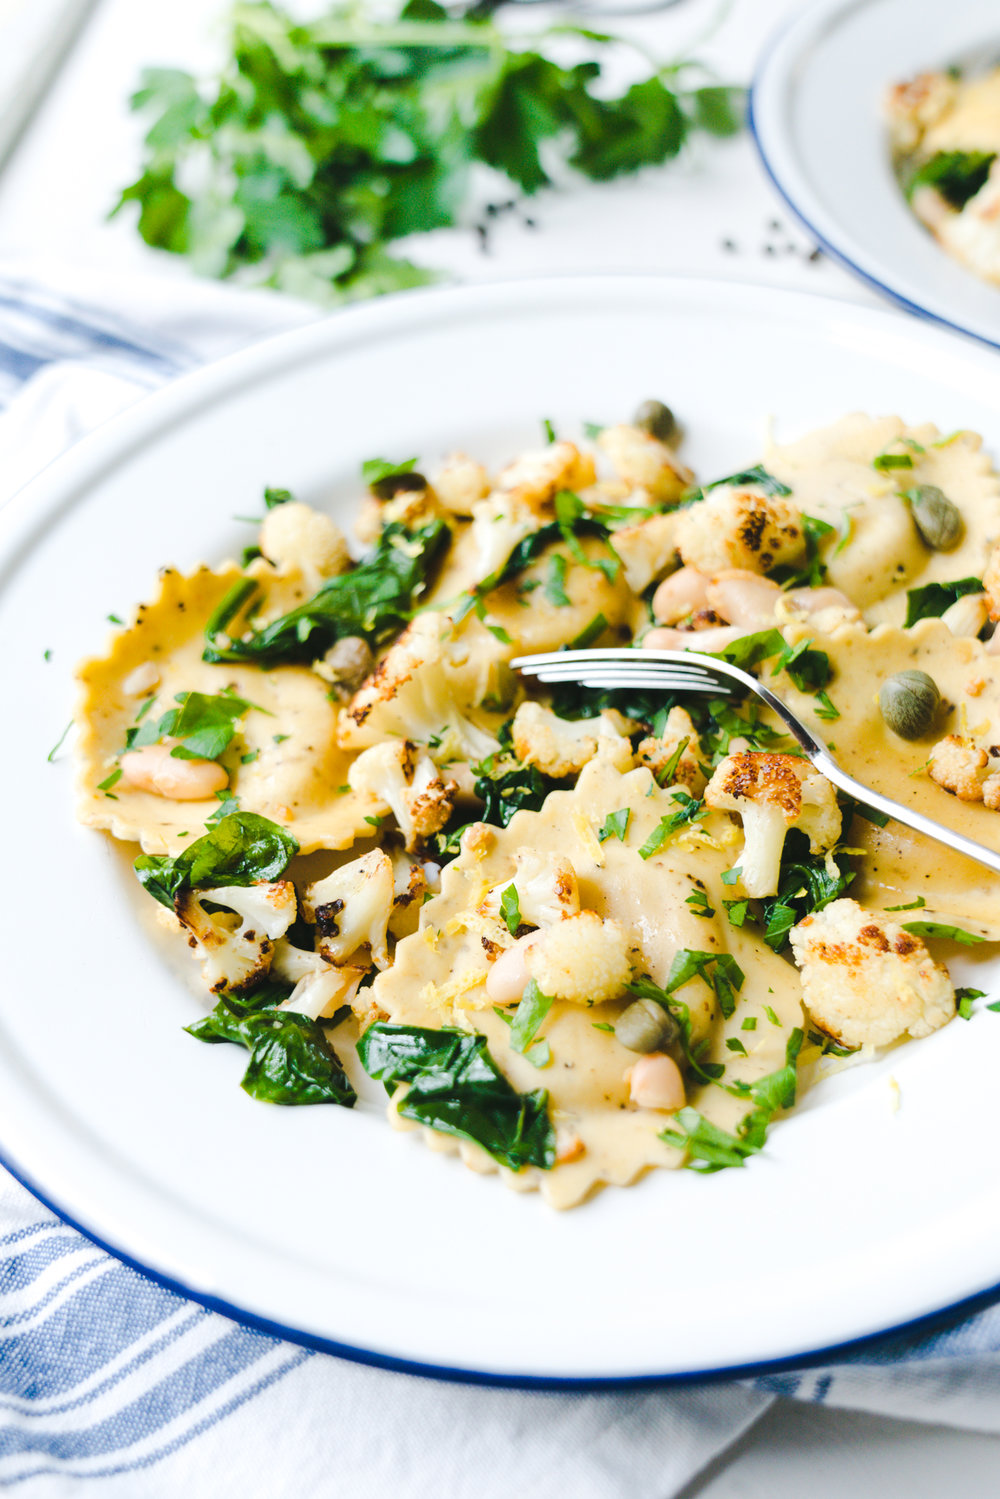 Cauliflower ravioli- quick and easy dinner recipes